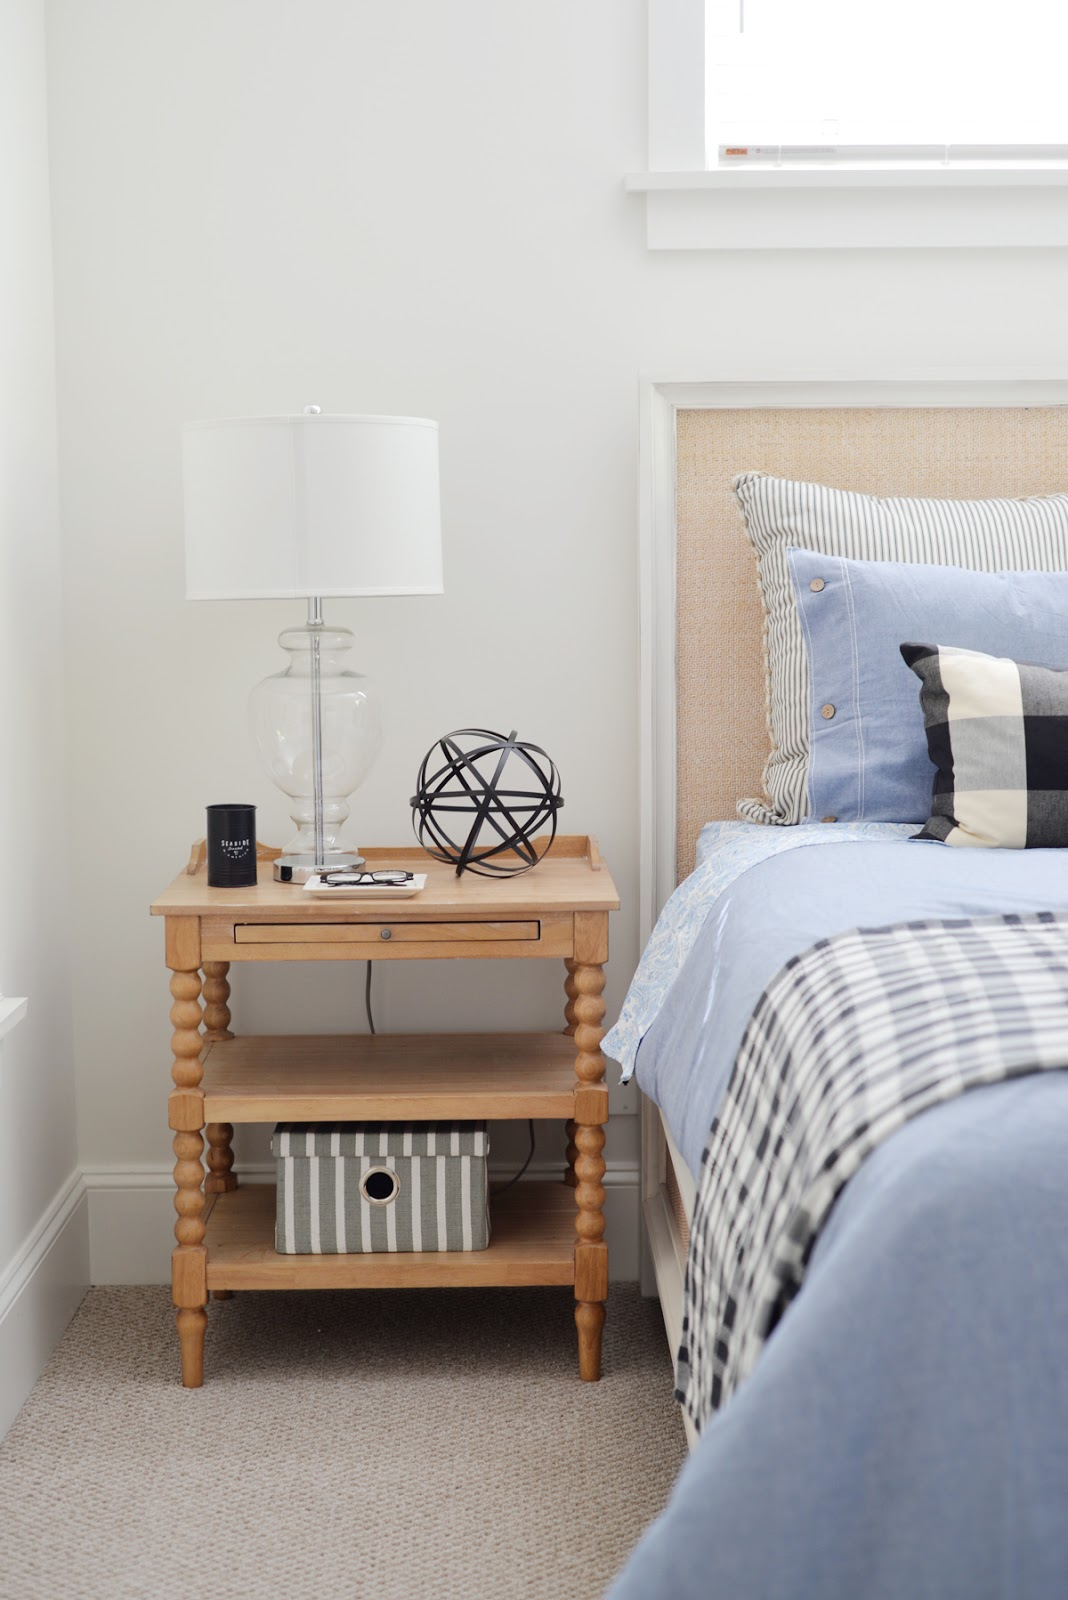 Ramblingrenovators.ca | Buffalo plaid pillow, spool side table, rattan headboard, modern country style cottage